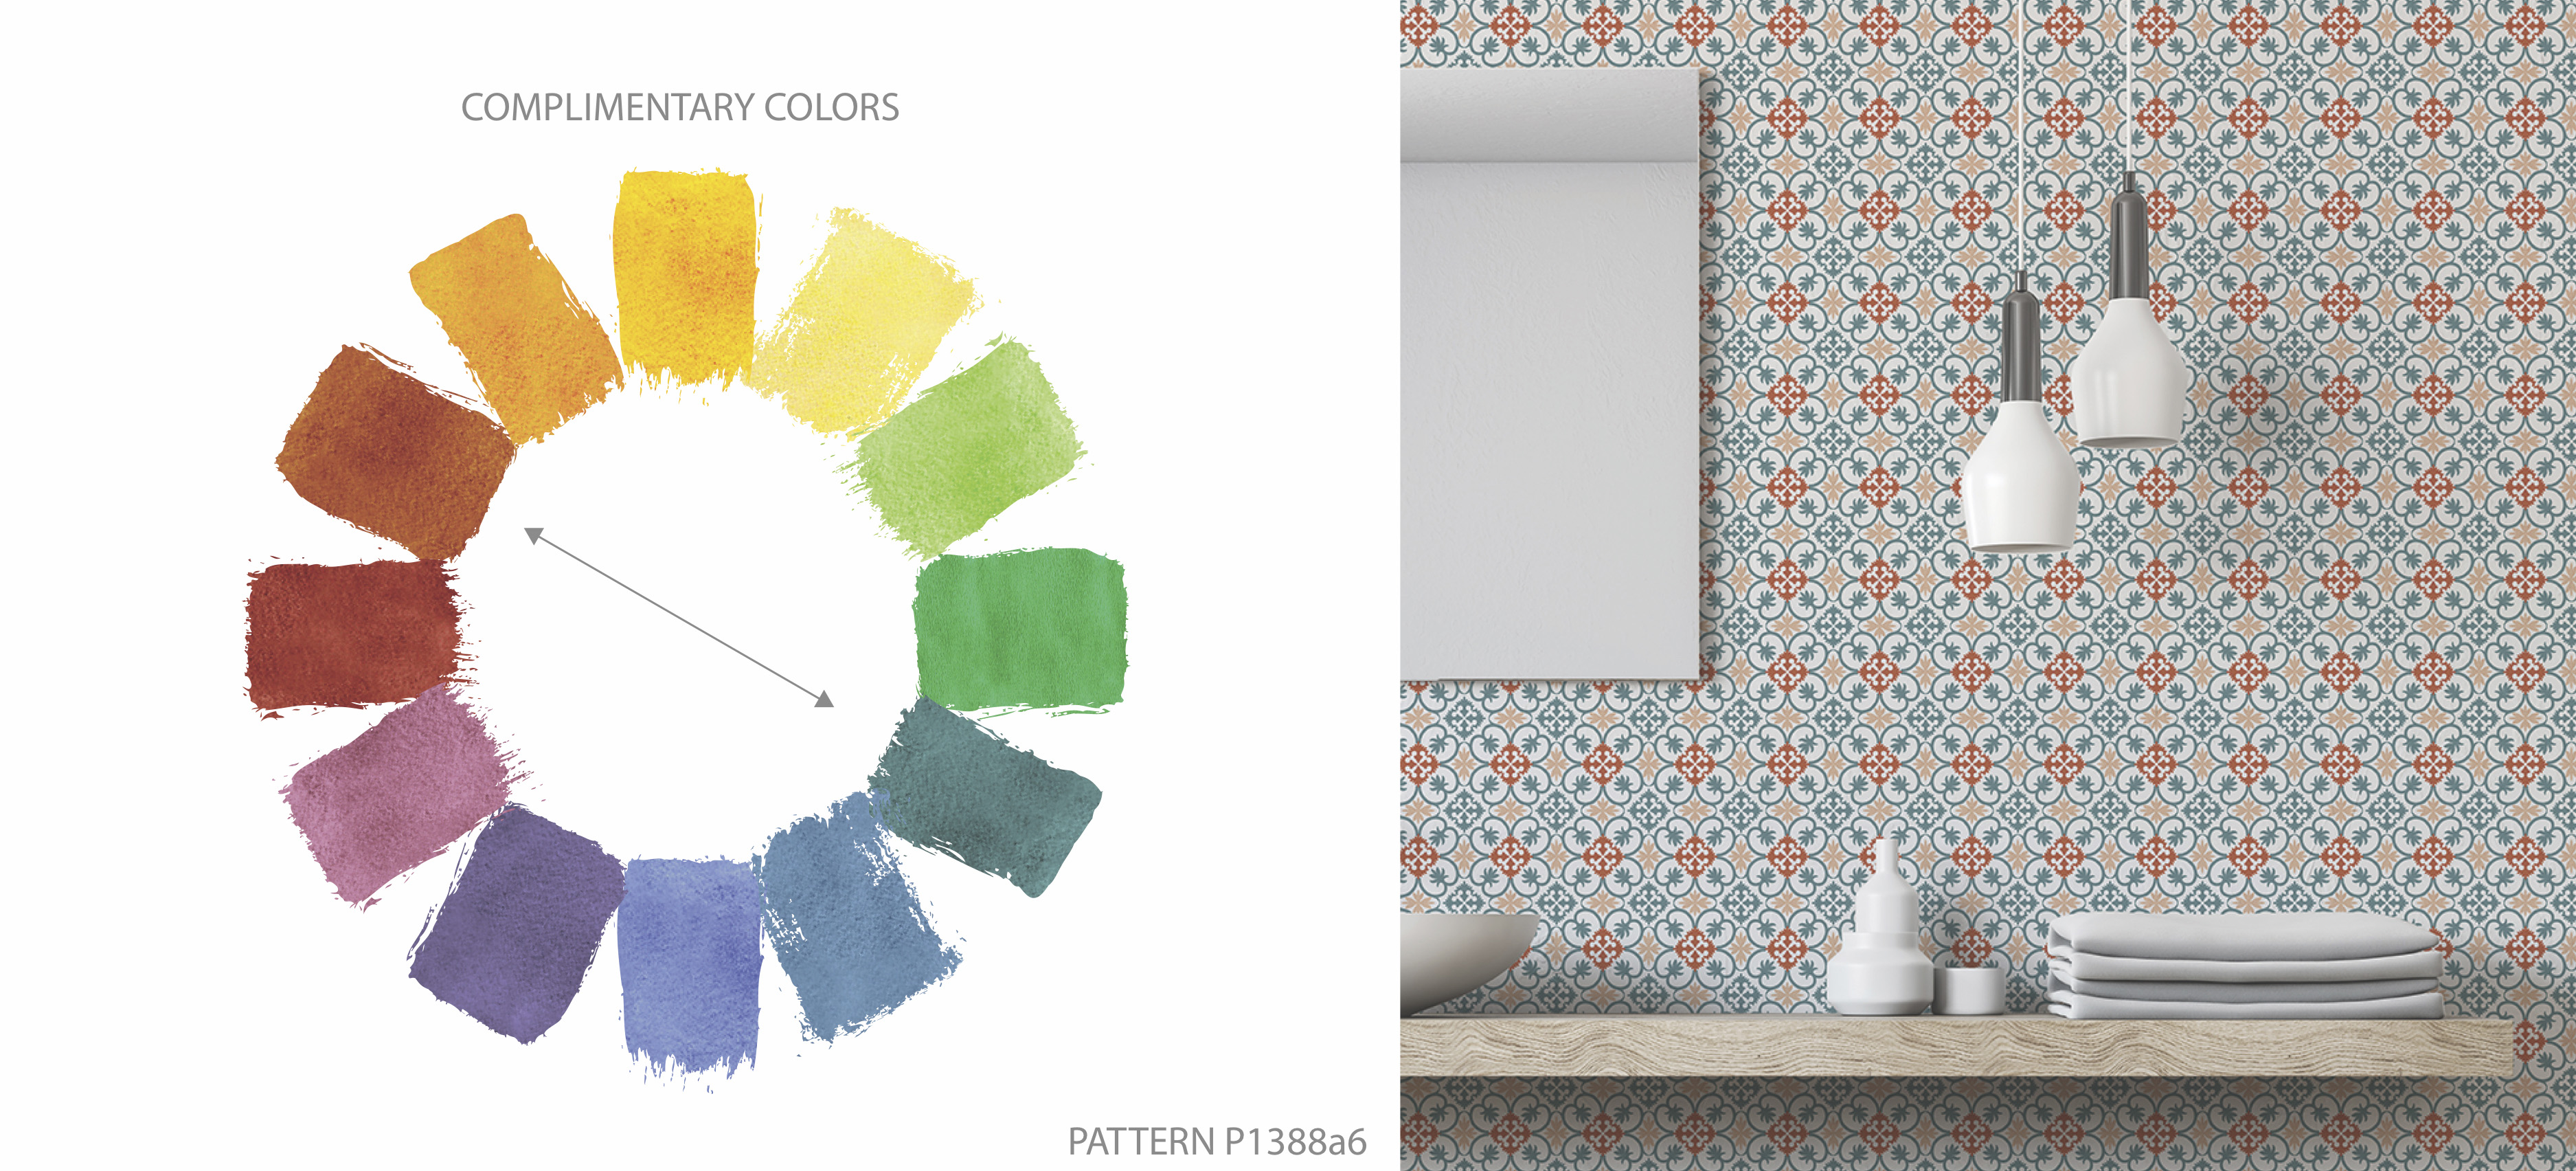 Color Wheel Complimentary Colors Pattern P1388 Tile